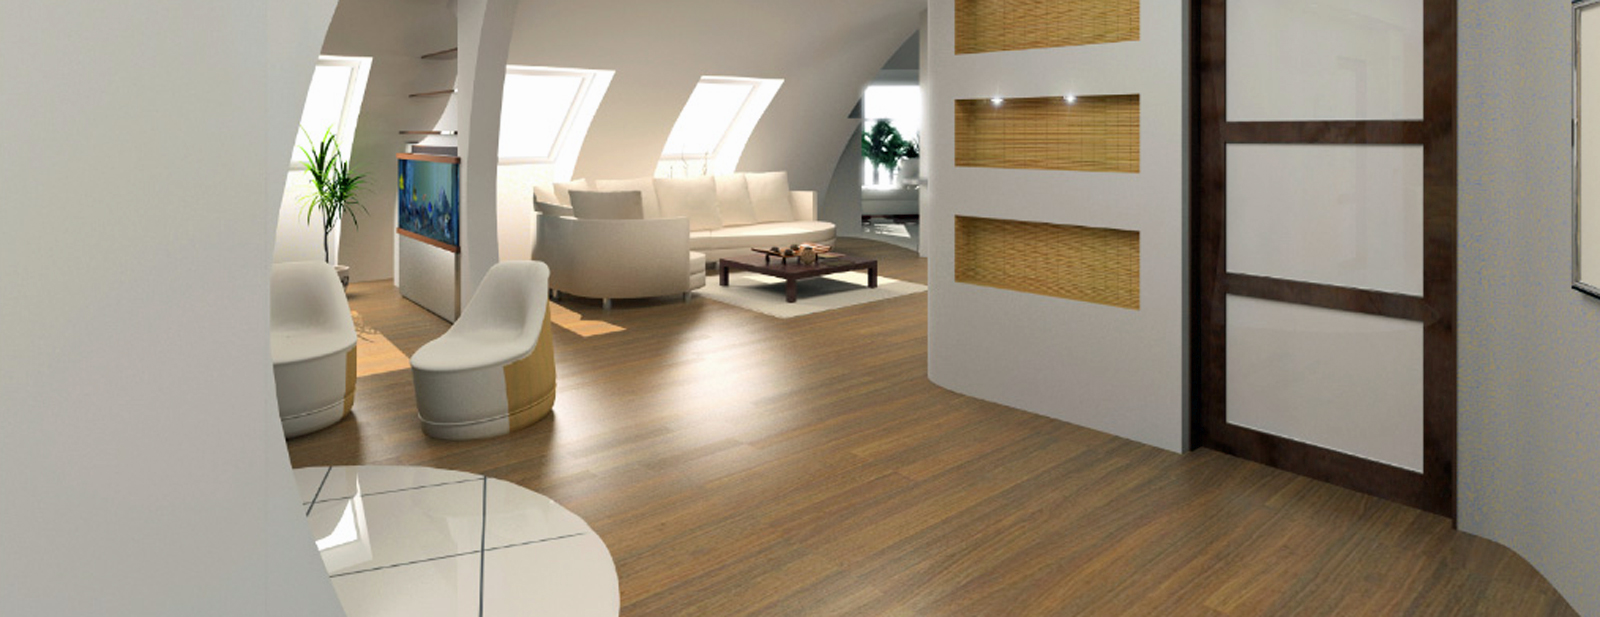 Laminate Flooring Experts, Installers – Choose the Best Laminate Wood, Plank Floor CRW Inc – Proudly serving the Westland, MI area since 2000.